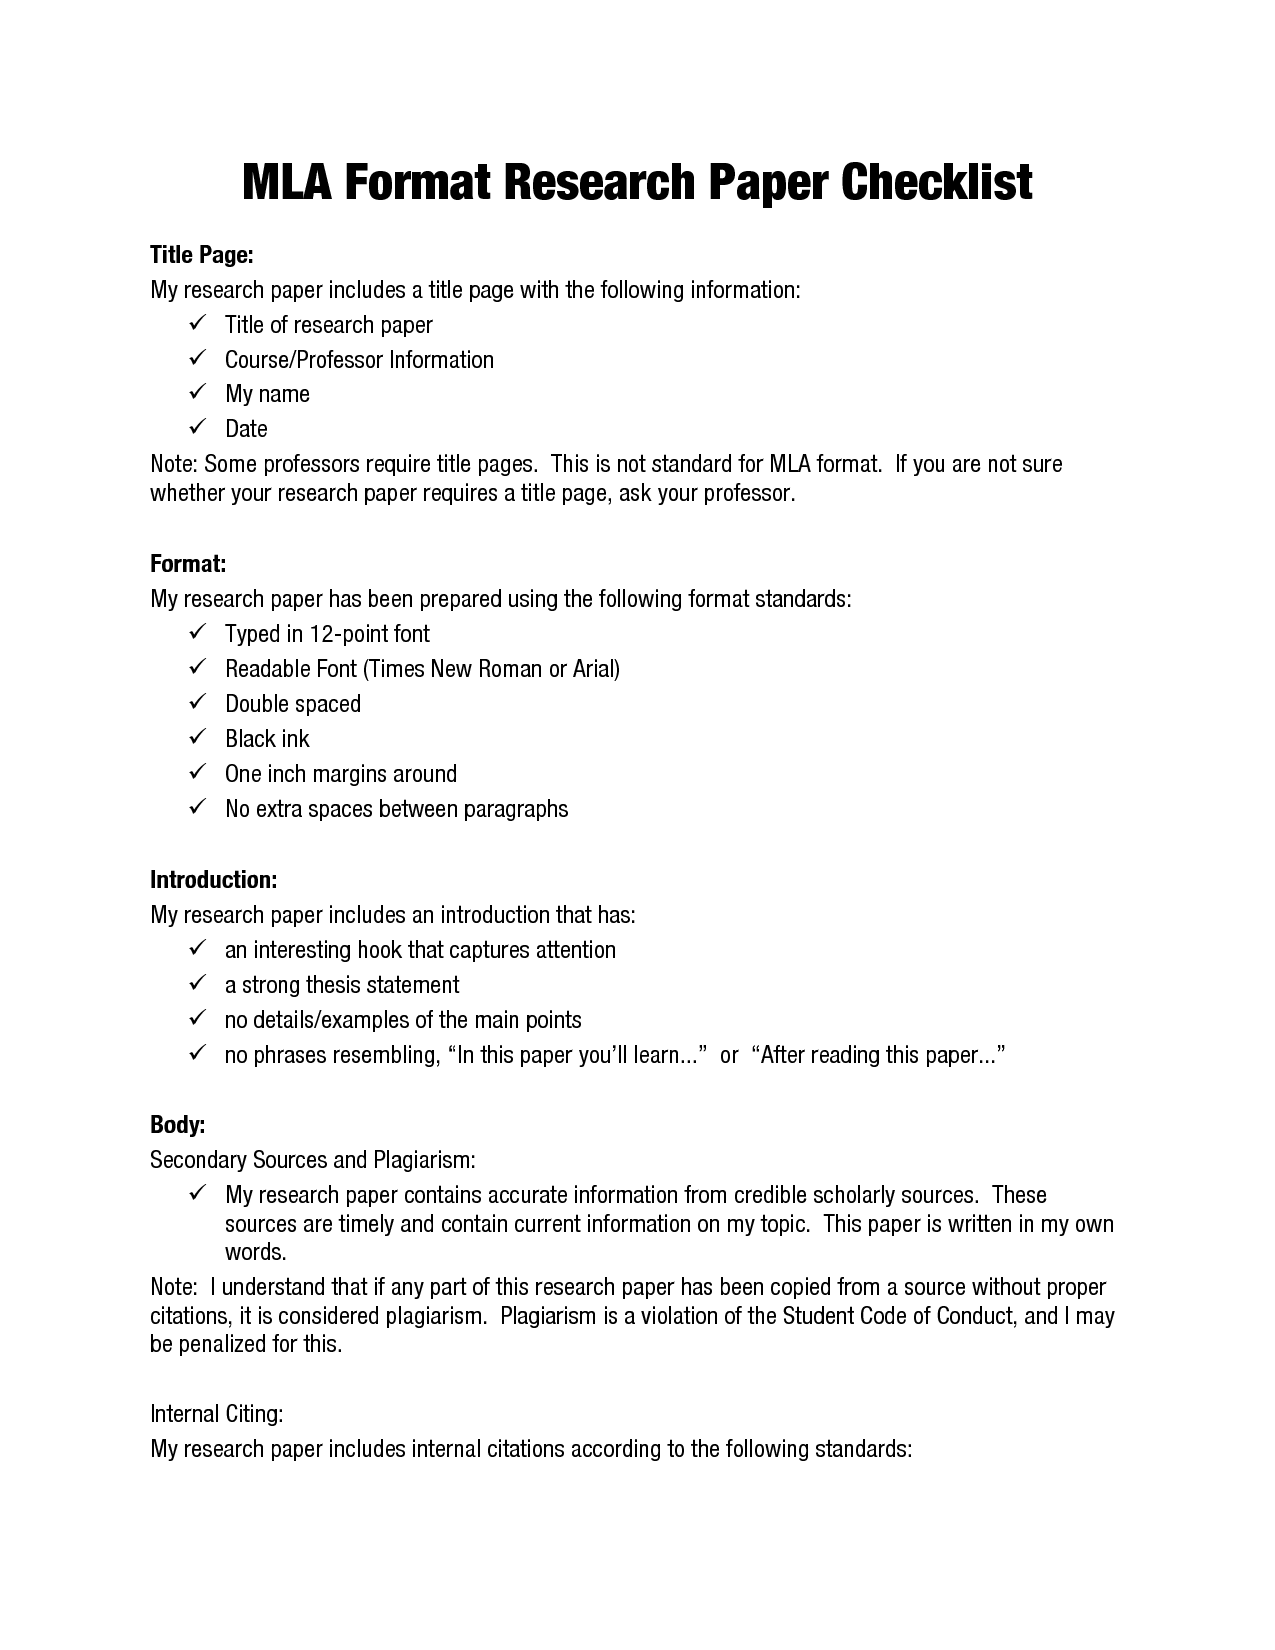 mla format research papers mla format research paper checklist mla format research papers mla format research paper checklist